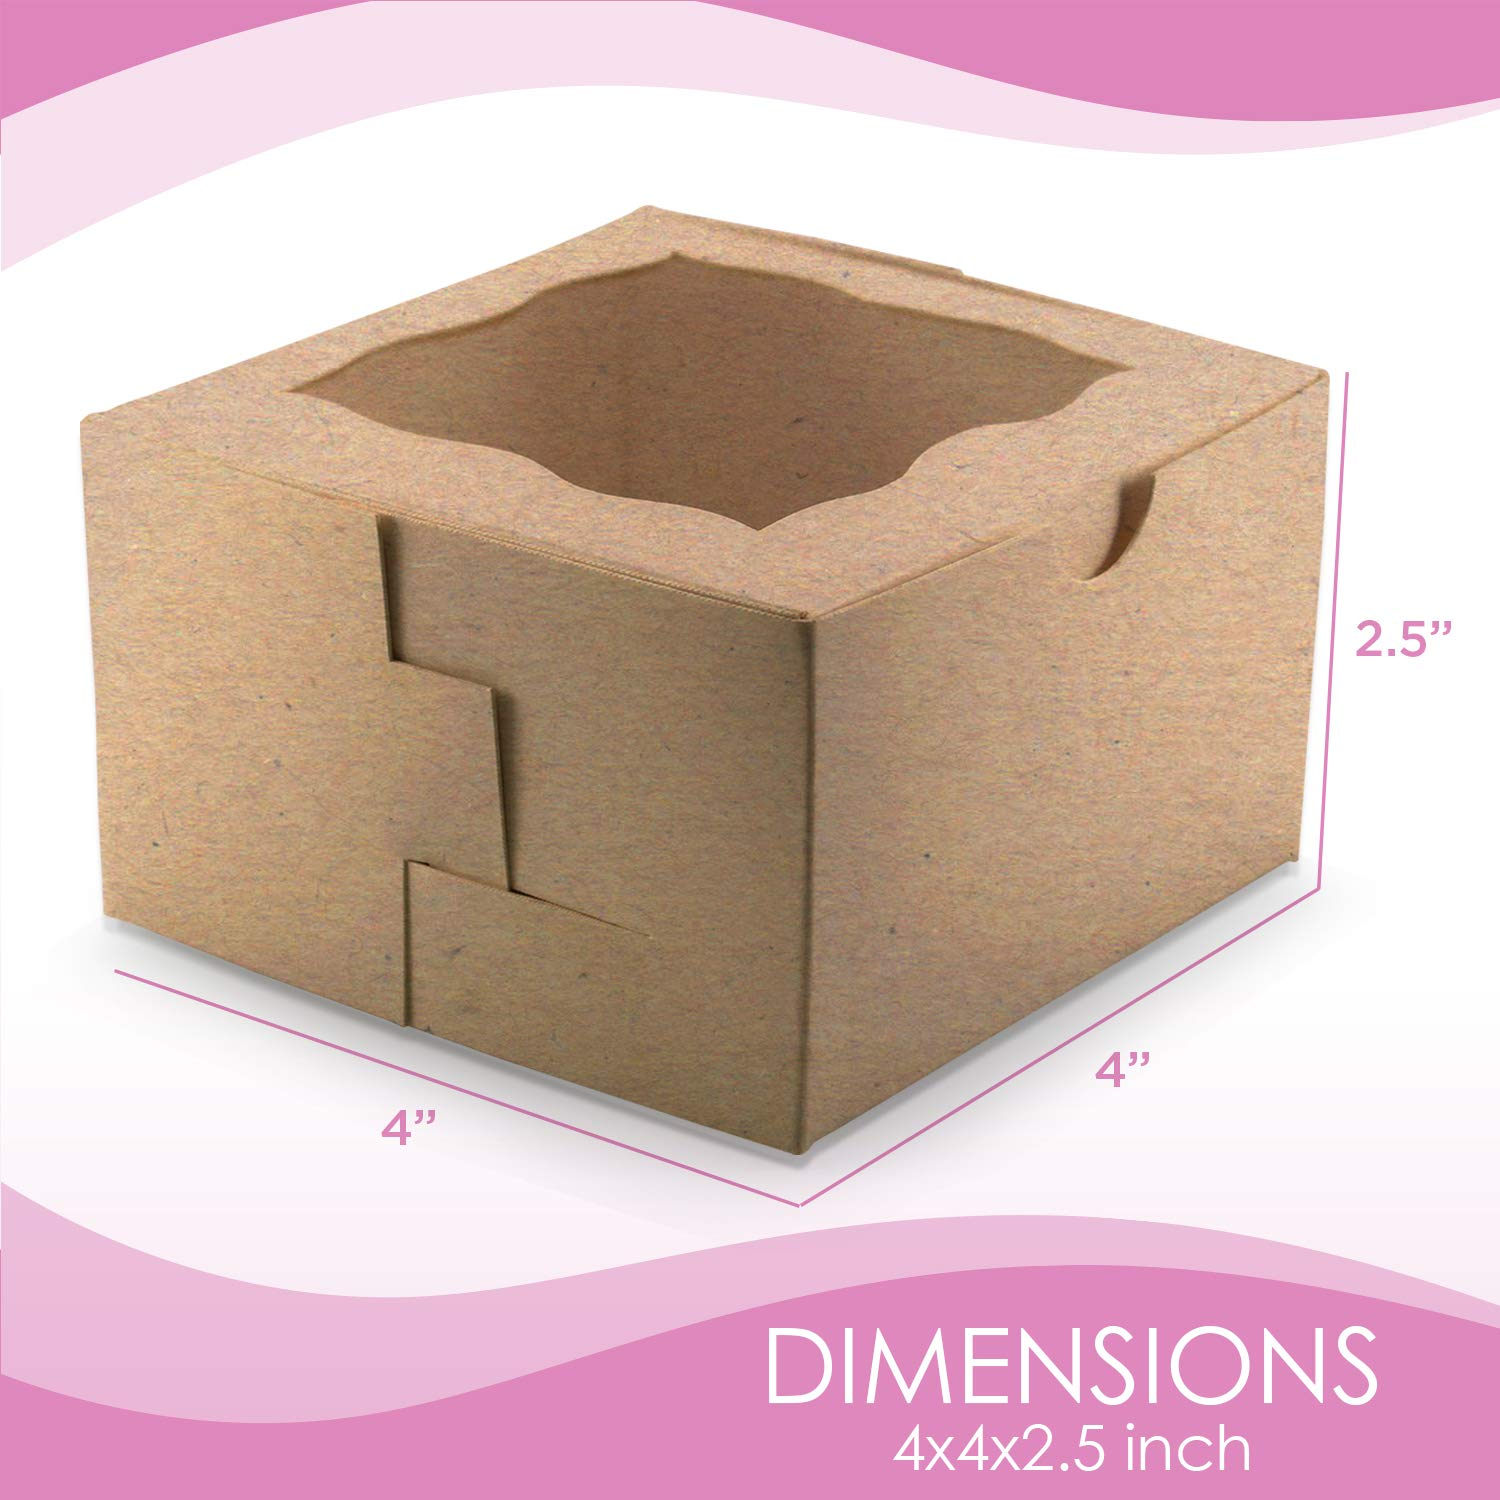 [50Pack] Bakery and Wedding Favor Boxes with Window 4x4x2.5'' - Gift Boxes for Cookies, Cake, Pastries, Donuts, Cupcakes, Candy & Baked Good Treats | Small Dessert Packaging Party Containers by FreshLi (Image #2)